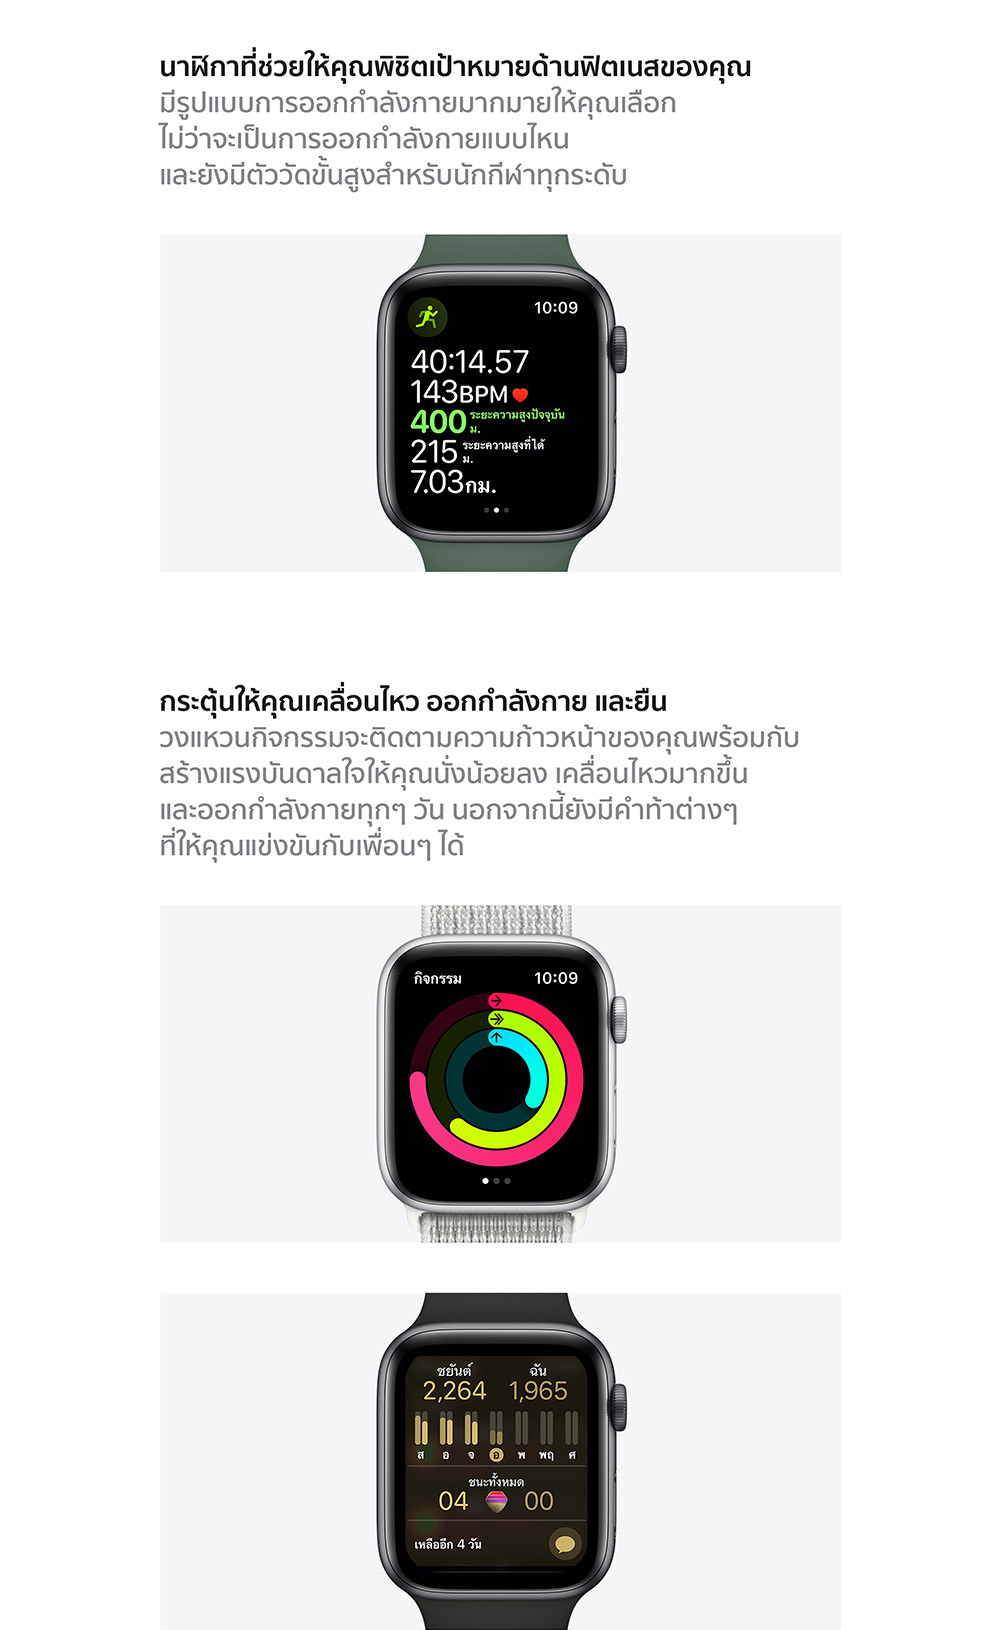 apple-watch-web-product-page_3_2.jpg